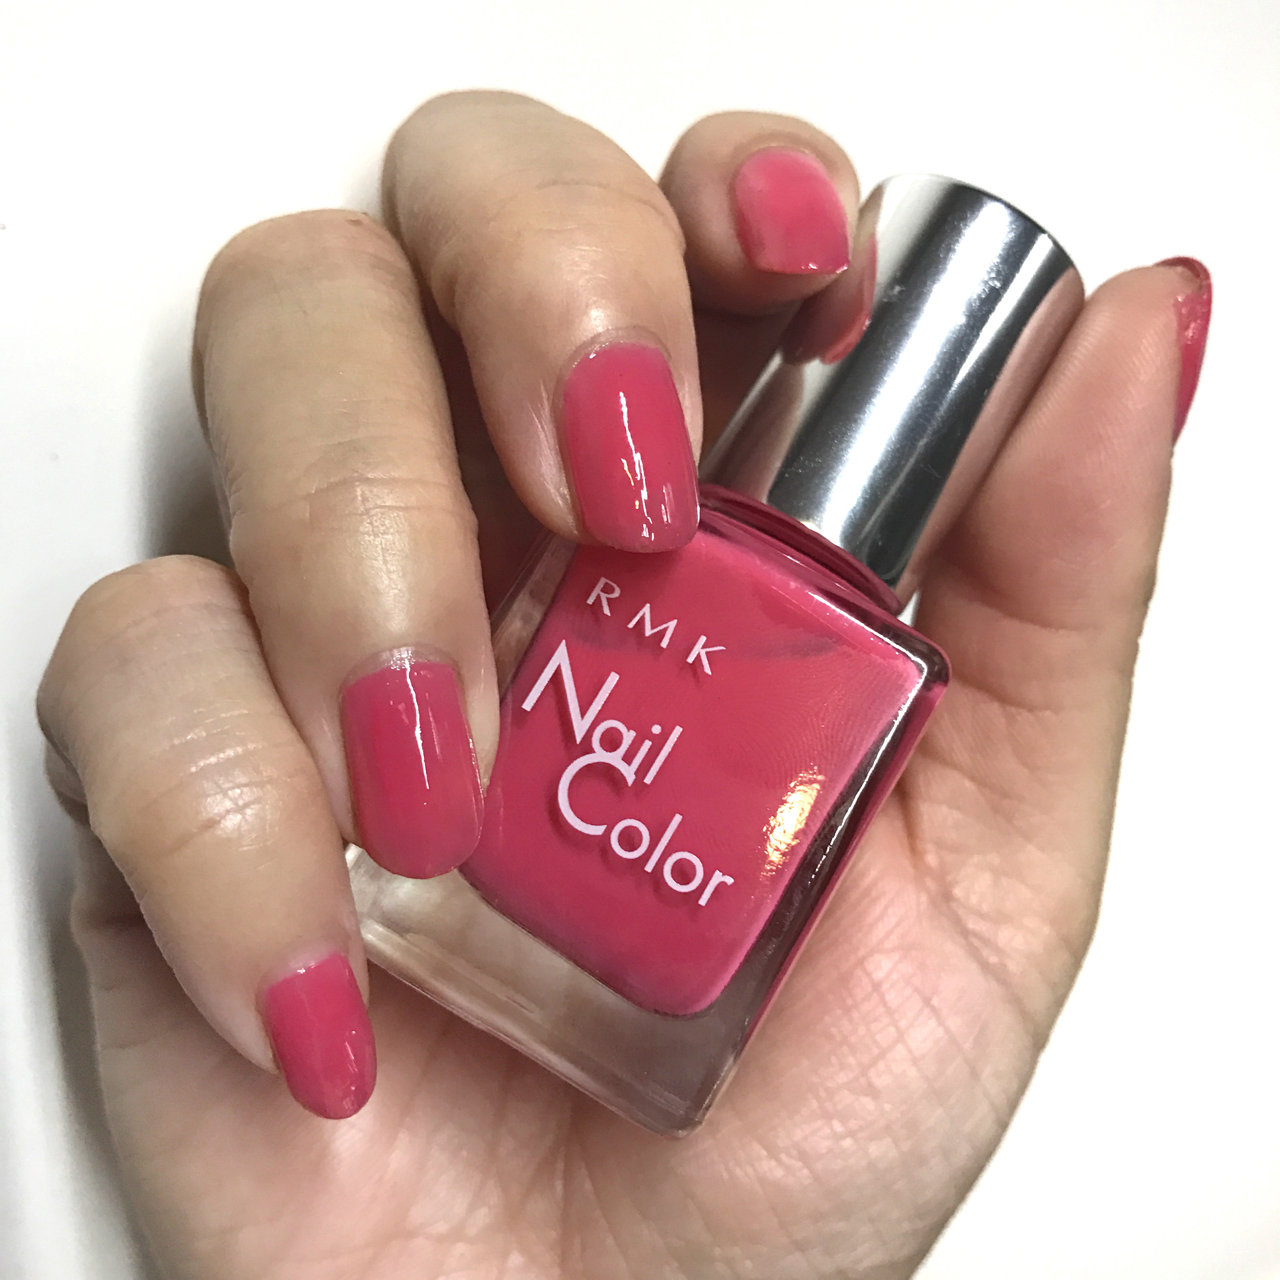 RMK Nail Color EX66 for Spring 2017